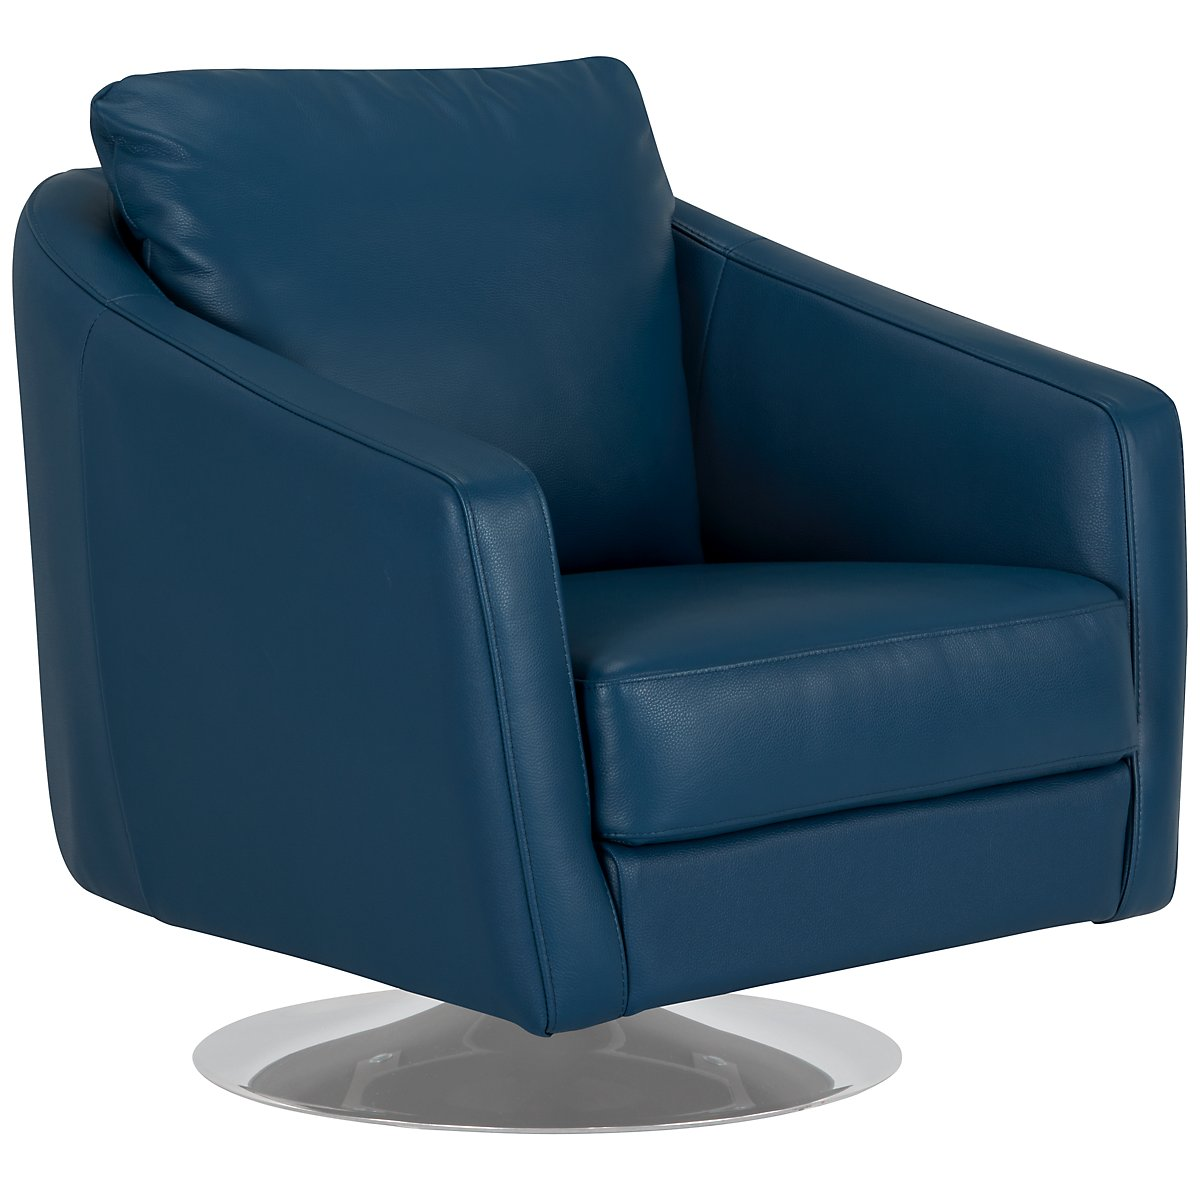 Navy blue reclining sofa thesofa for Blue leather reclining sofa